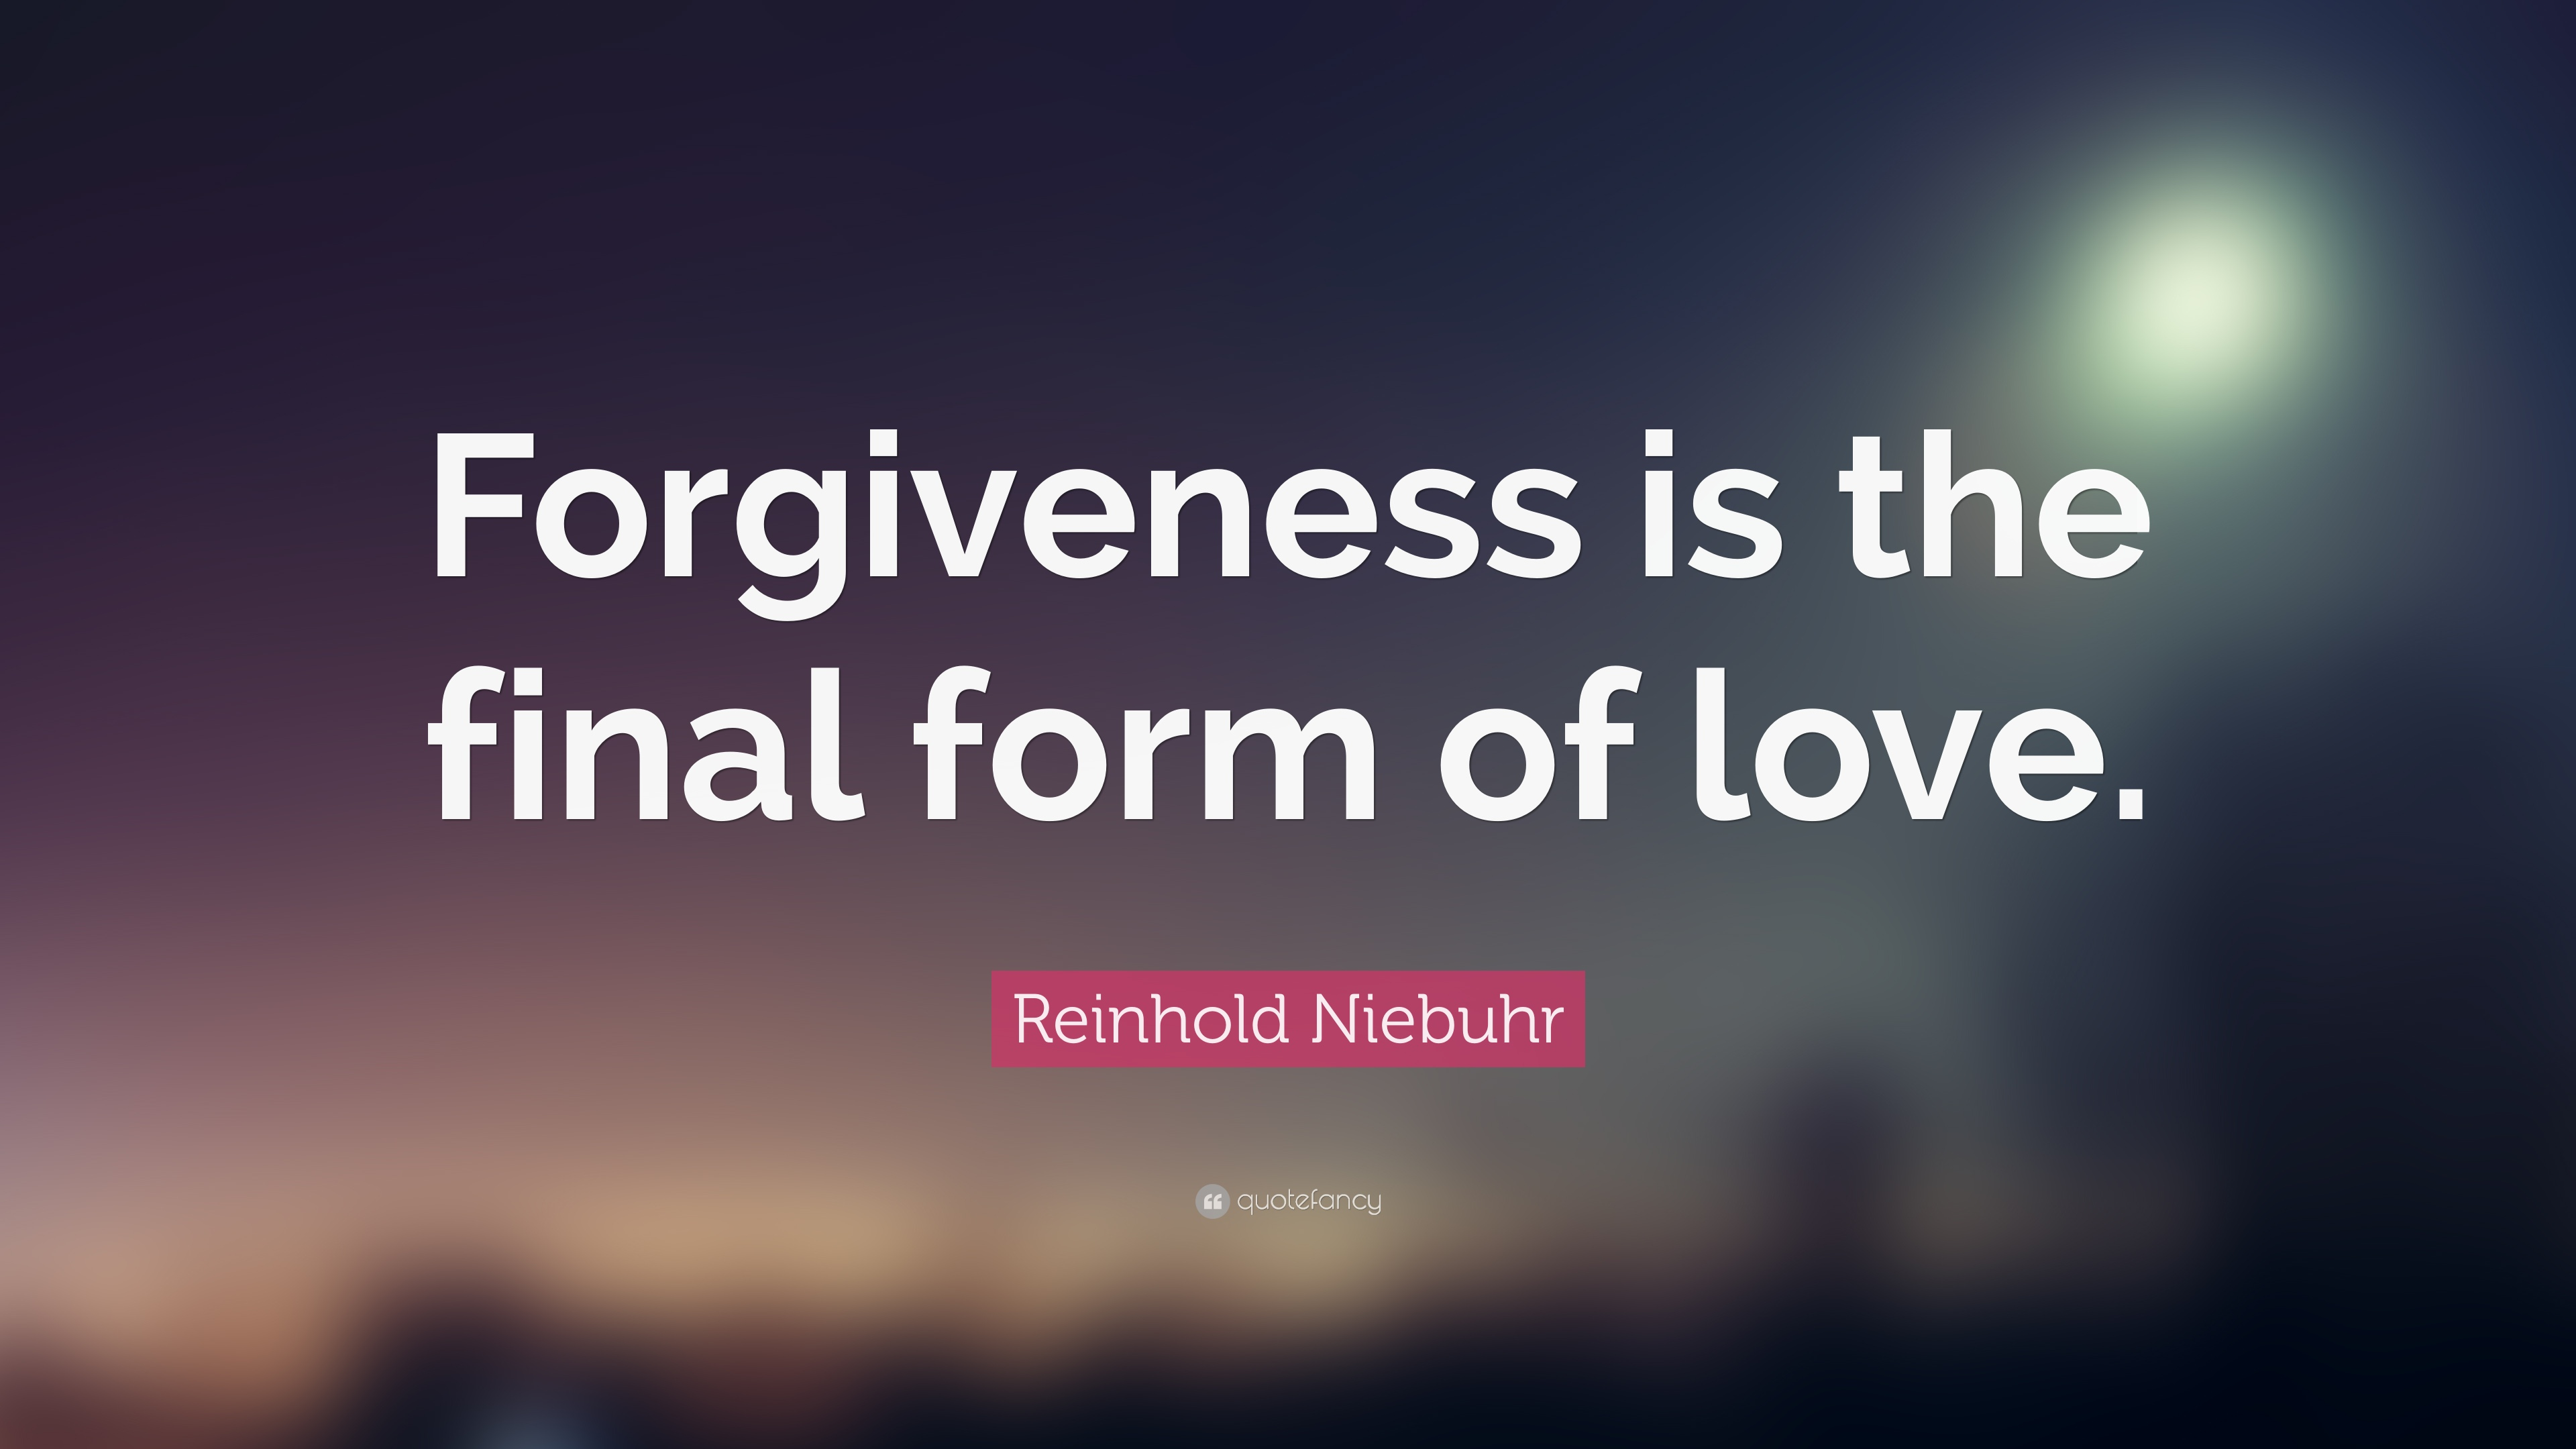 Love Forgiveness Quotes Best Forgiveness Quotes 40 Wallpapers  Quotefancy